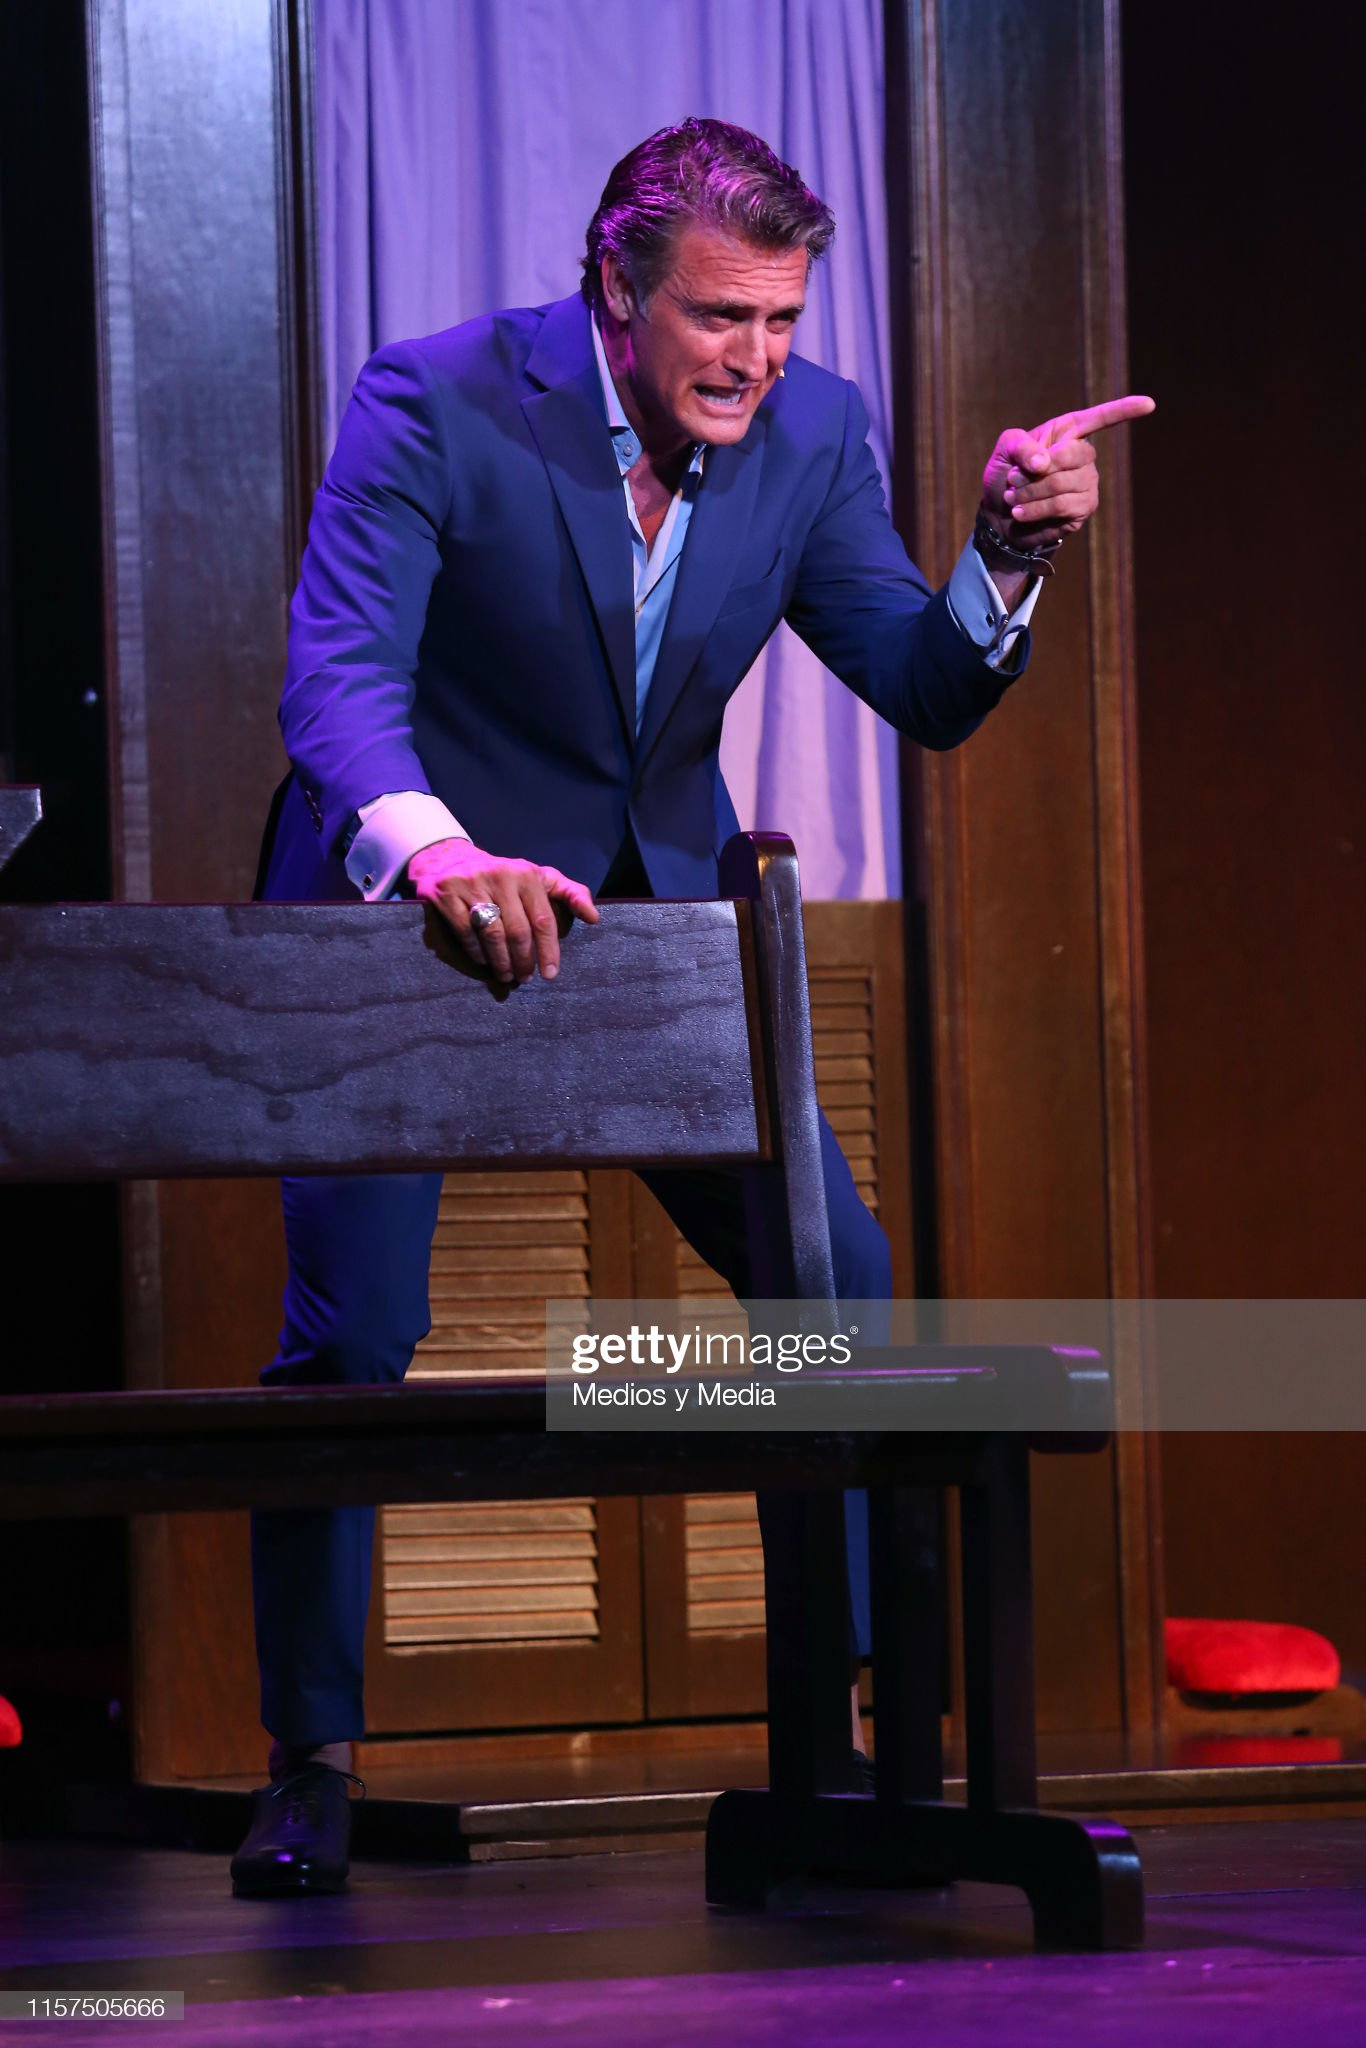 https://media.gettyimages.com/photos/juan-soler-performs-on-stage-during-the-premiere-of-la-homofobia-no-picture-id1157505666?s=2048x2048